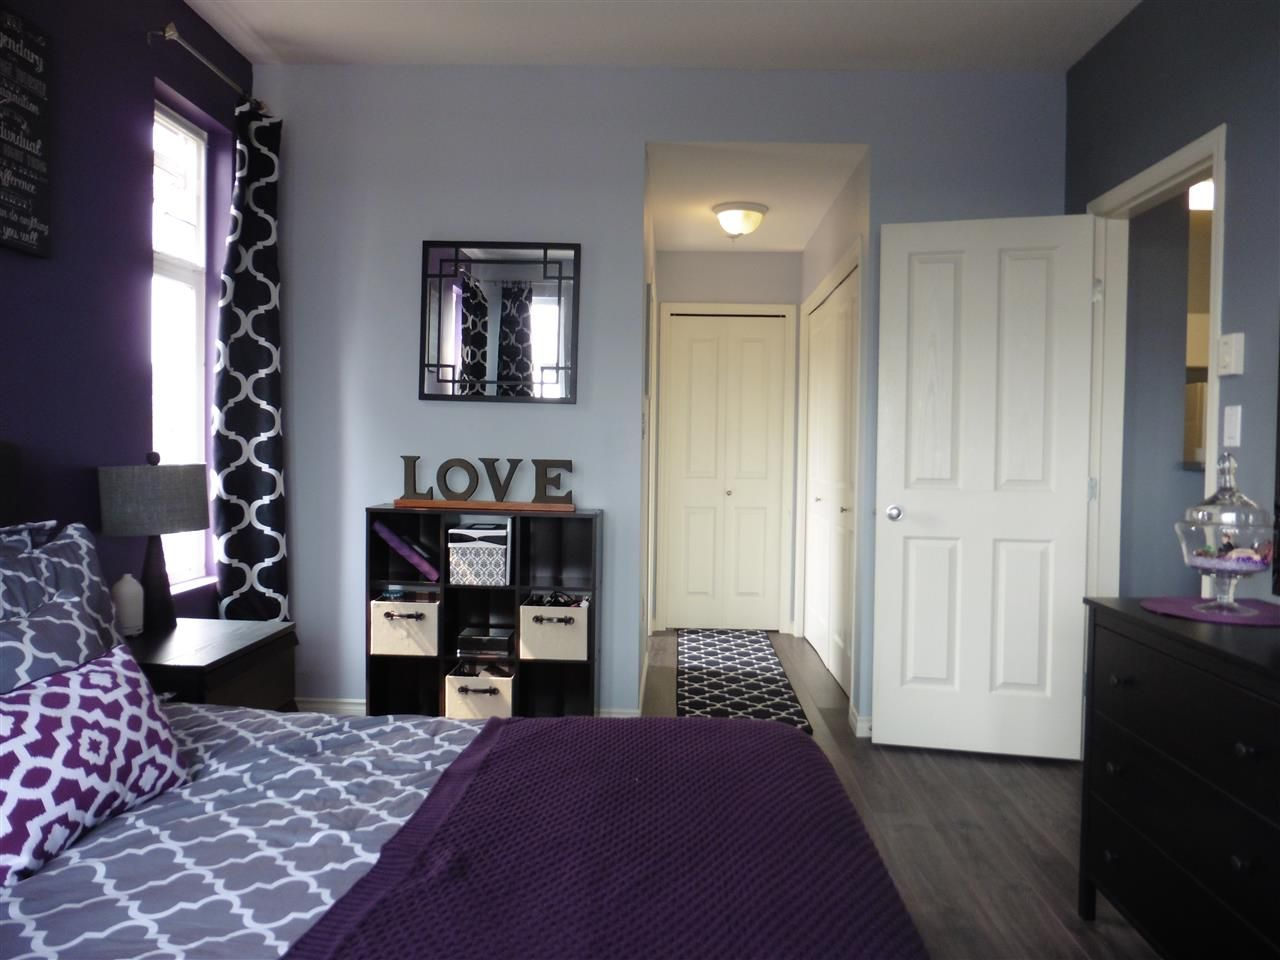 """Photo 11: Photos: 307 580 TWELFTH Street in New Westminster: Uptown NW Condo for sale in """"THE REGENCY"""" : MLS®# R2193816"""